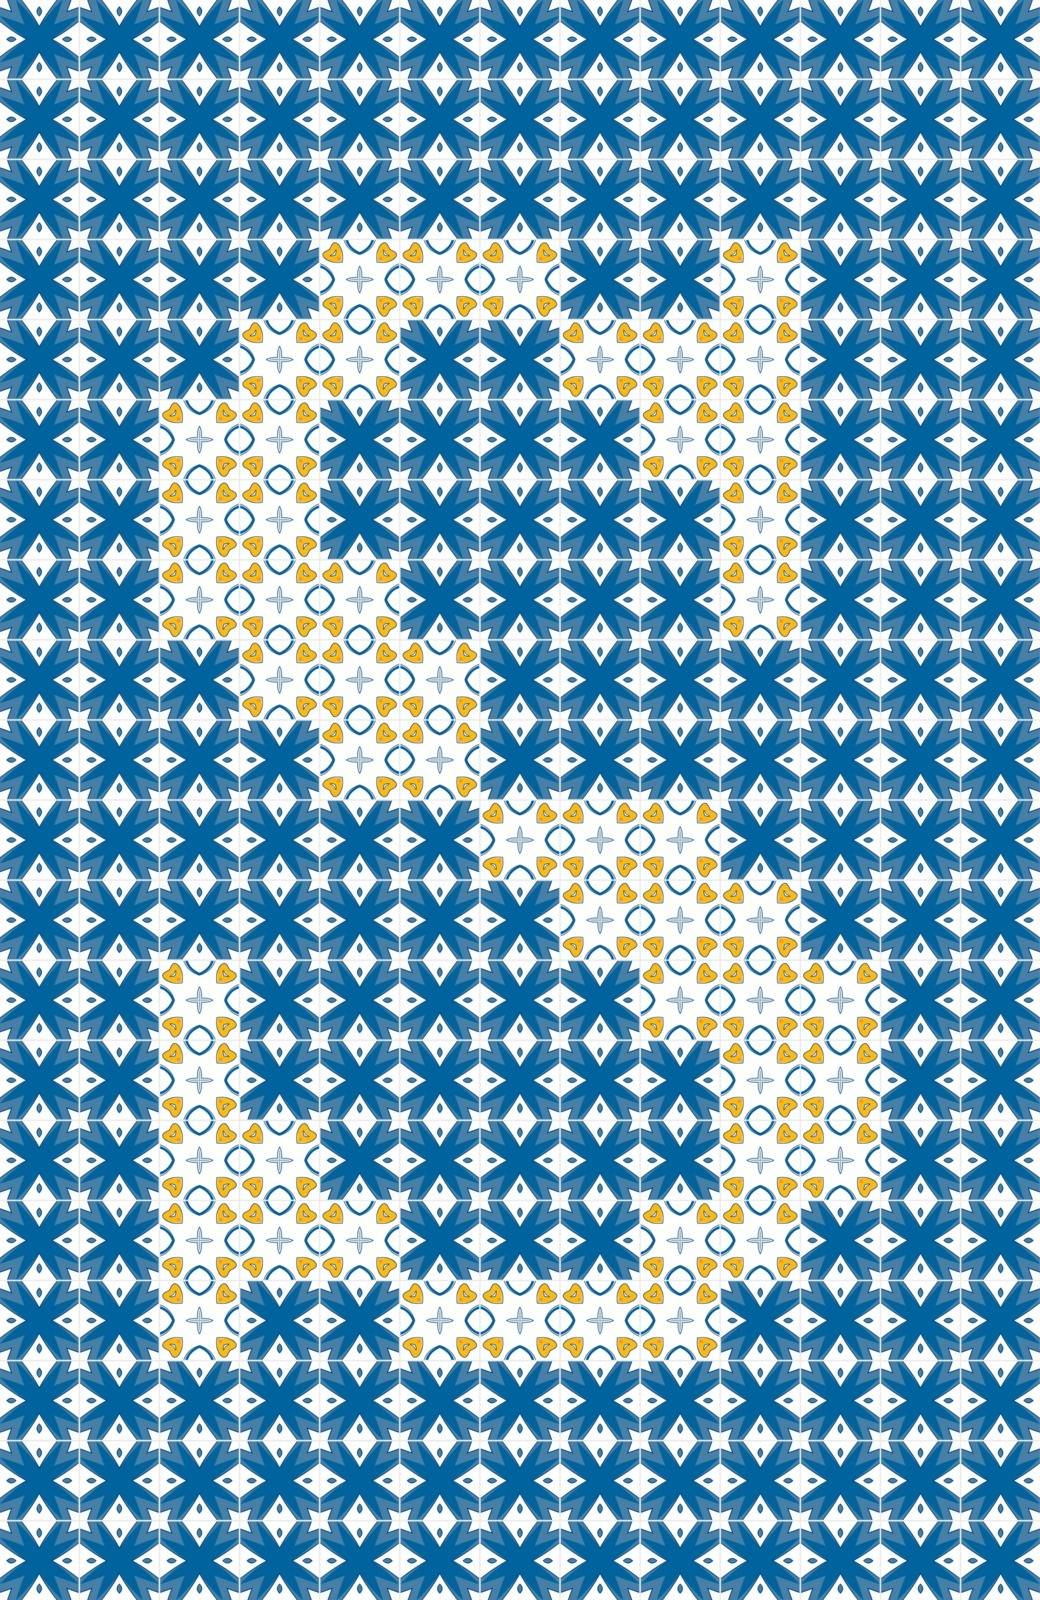 Capital letter S made of Portuguese tiles